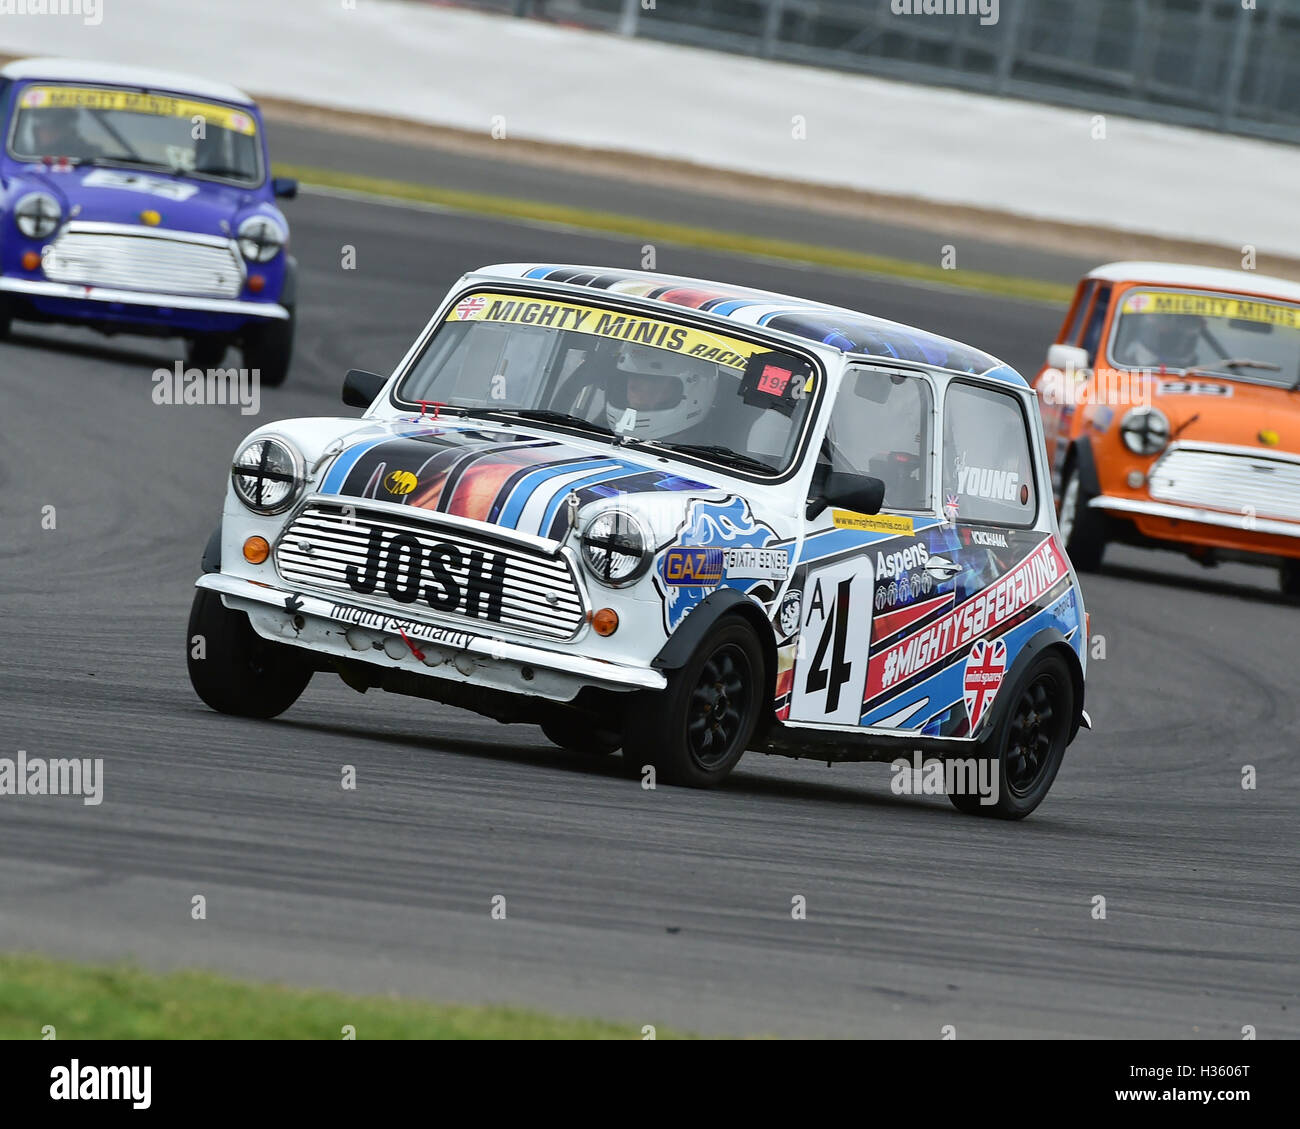 Josh Young, Mighty Mini, 1275, Mighty Mini Championship, Saturday, Silverstone, Silverstone truck festival, Saturday, - Stock Image